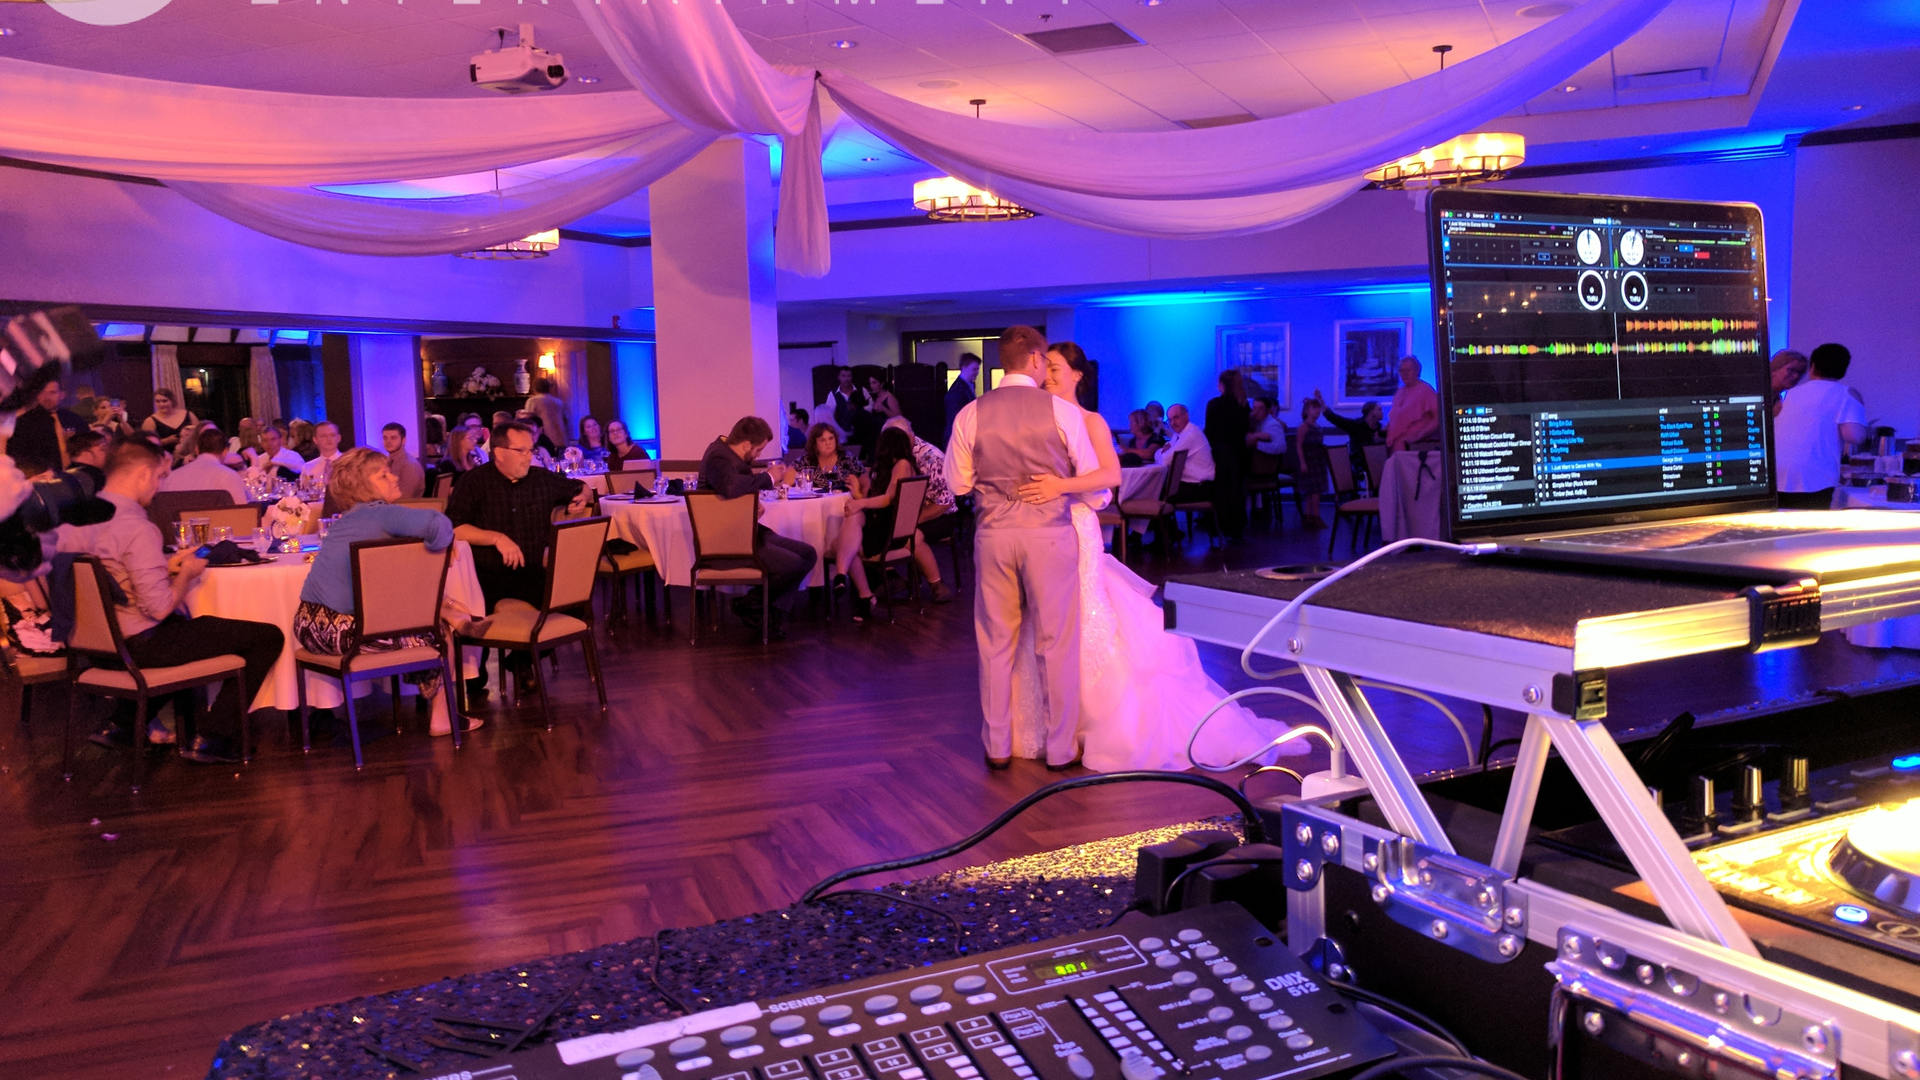 9.1.18 Wedding Reception @ Bloomington Country Club